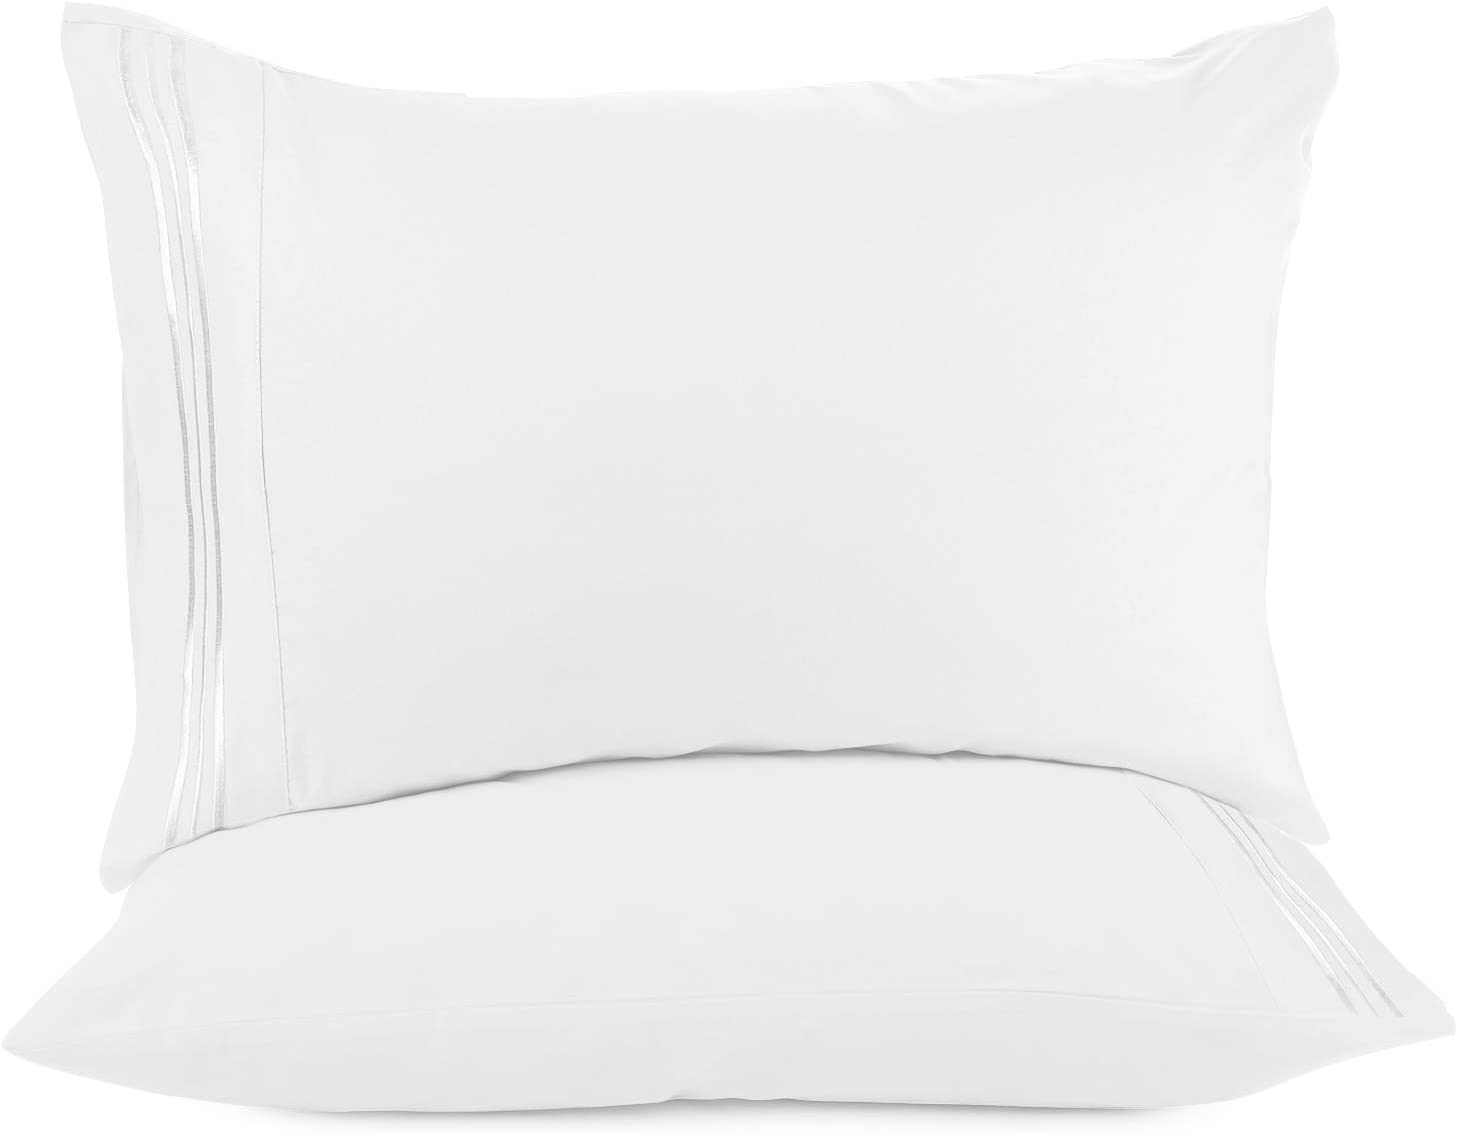 Nestl Bedding Soft Pillow Case Set of 2 - Double Brushed Microfiber Hypoallergenic Pillow Covers - 1800 Series Premium Bed Pillow Cases, King - White